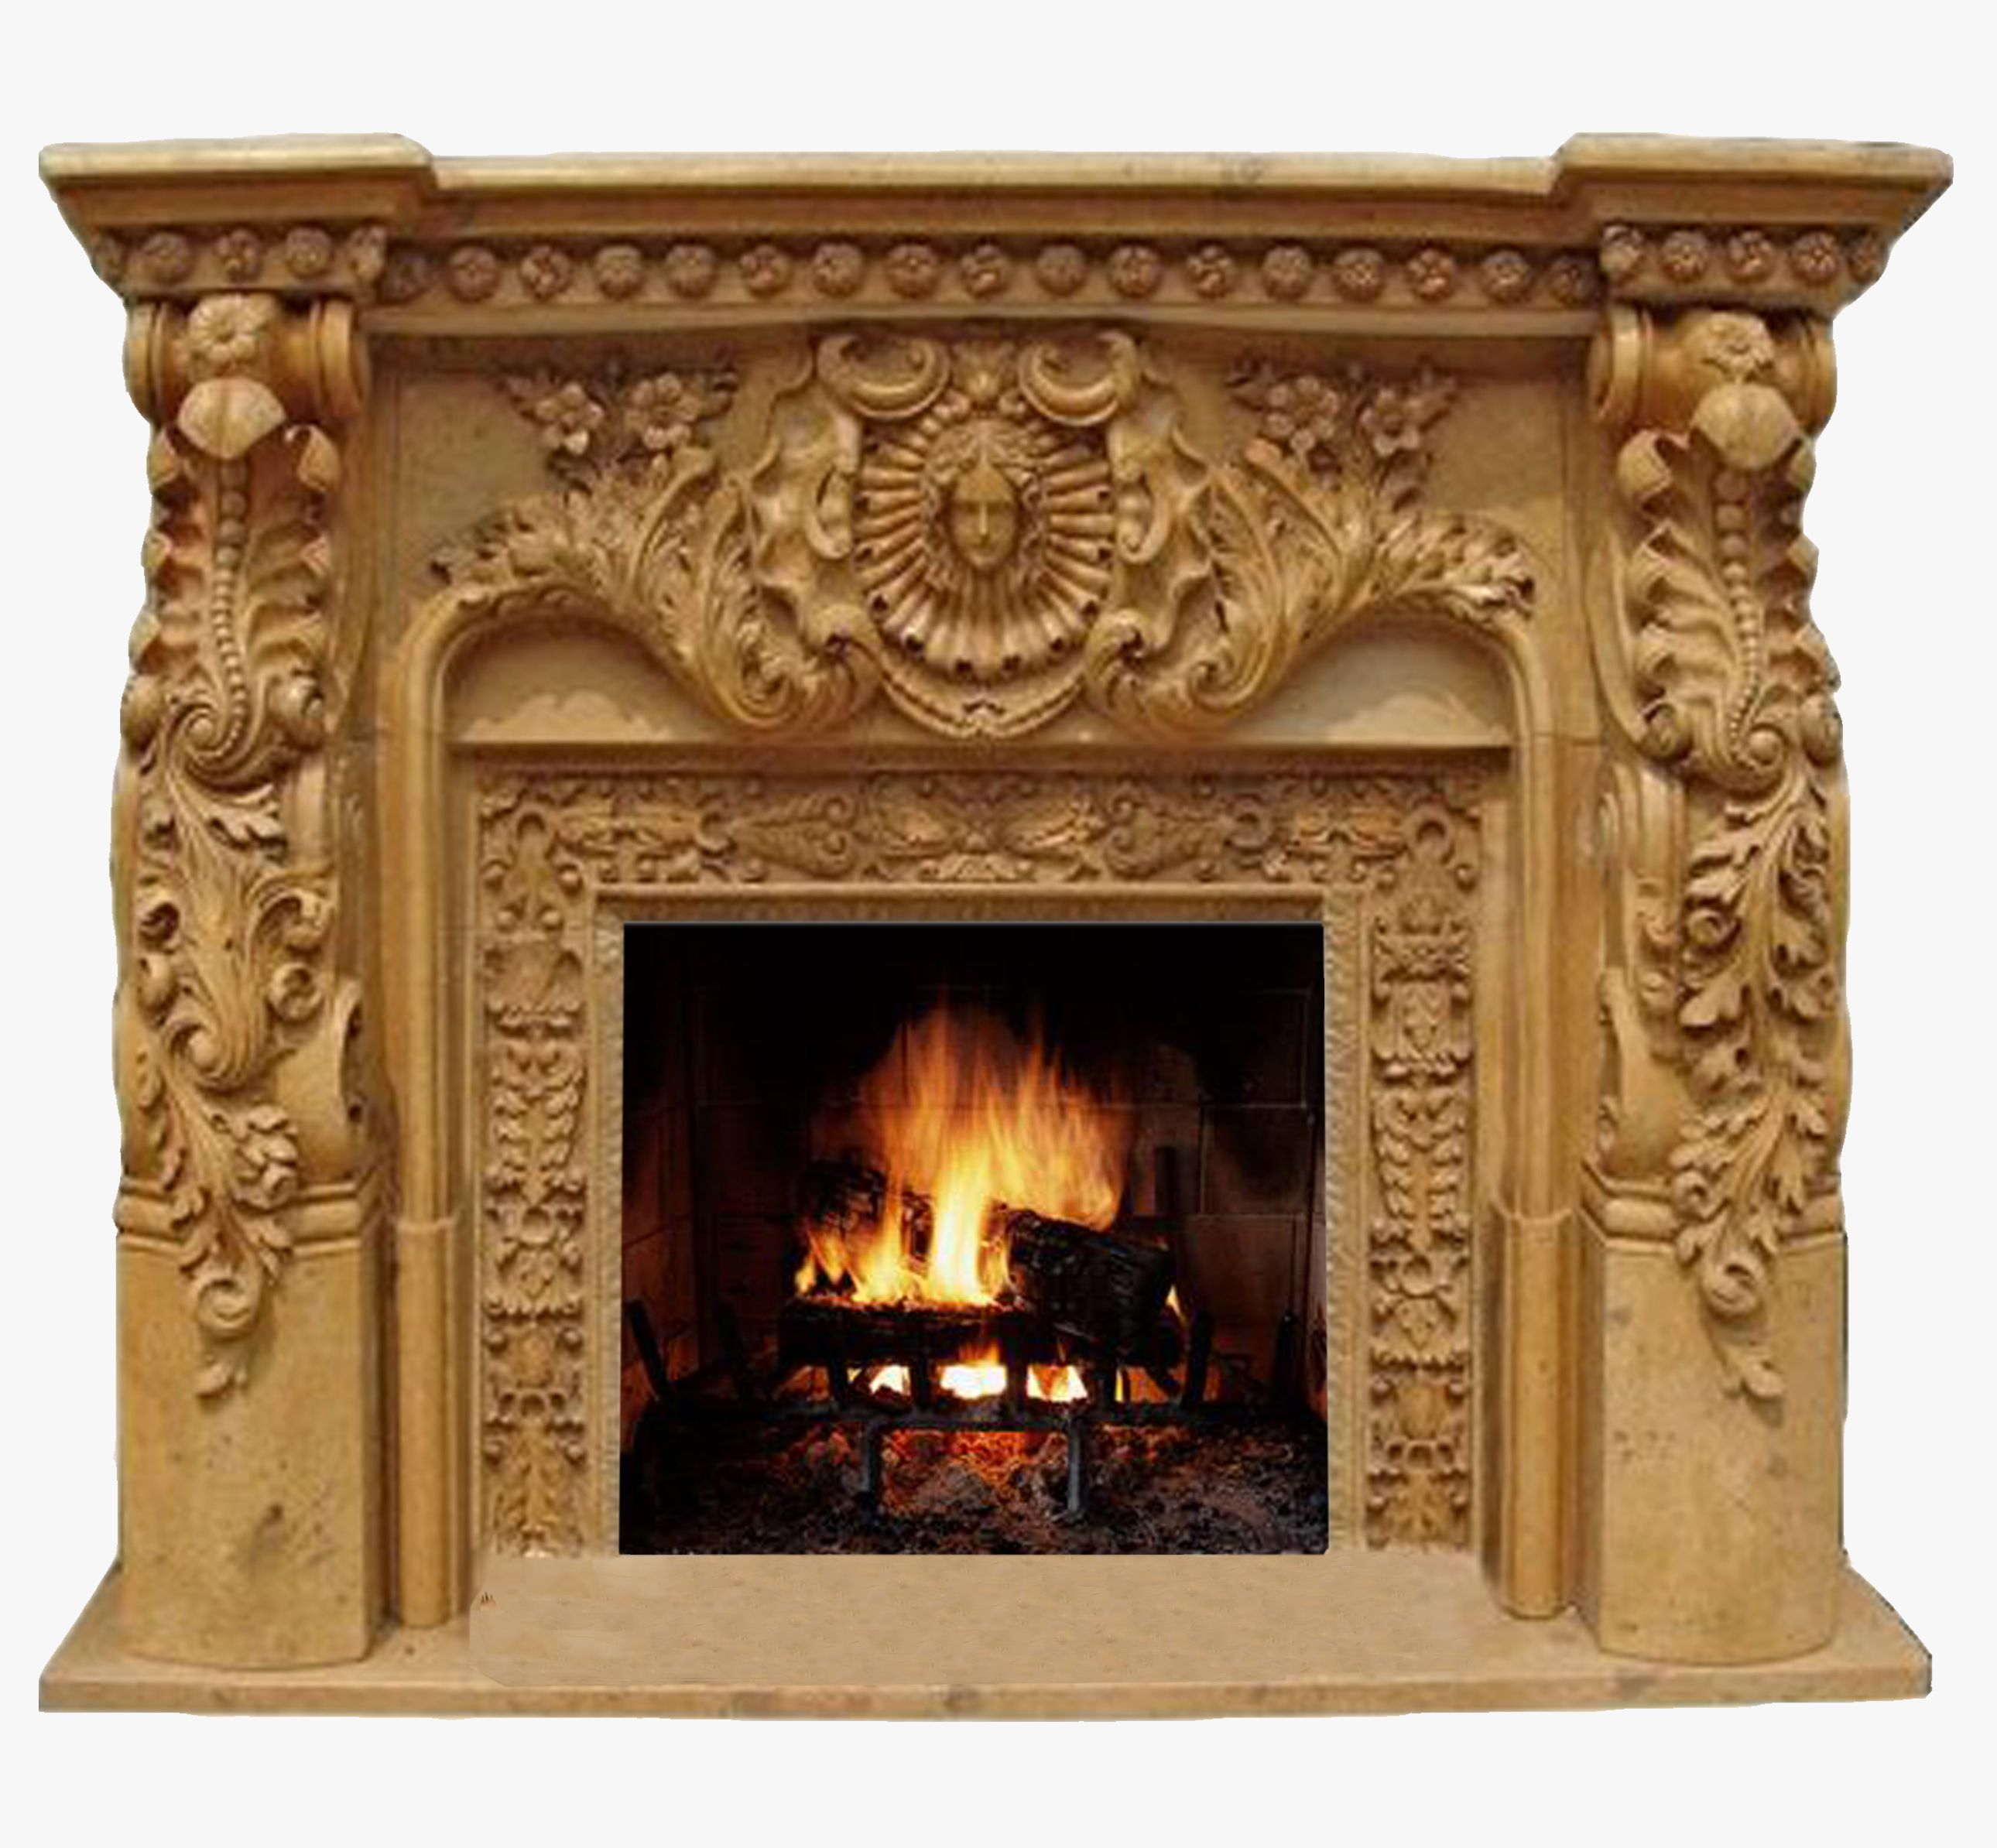 Pin by xanthoula on fireplaces pinterest fire places fireplace